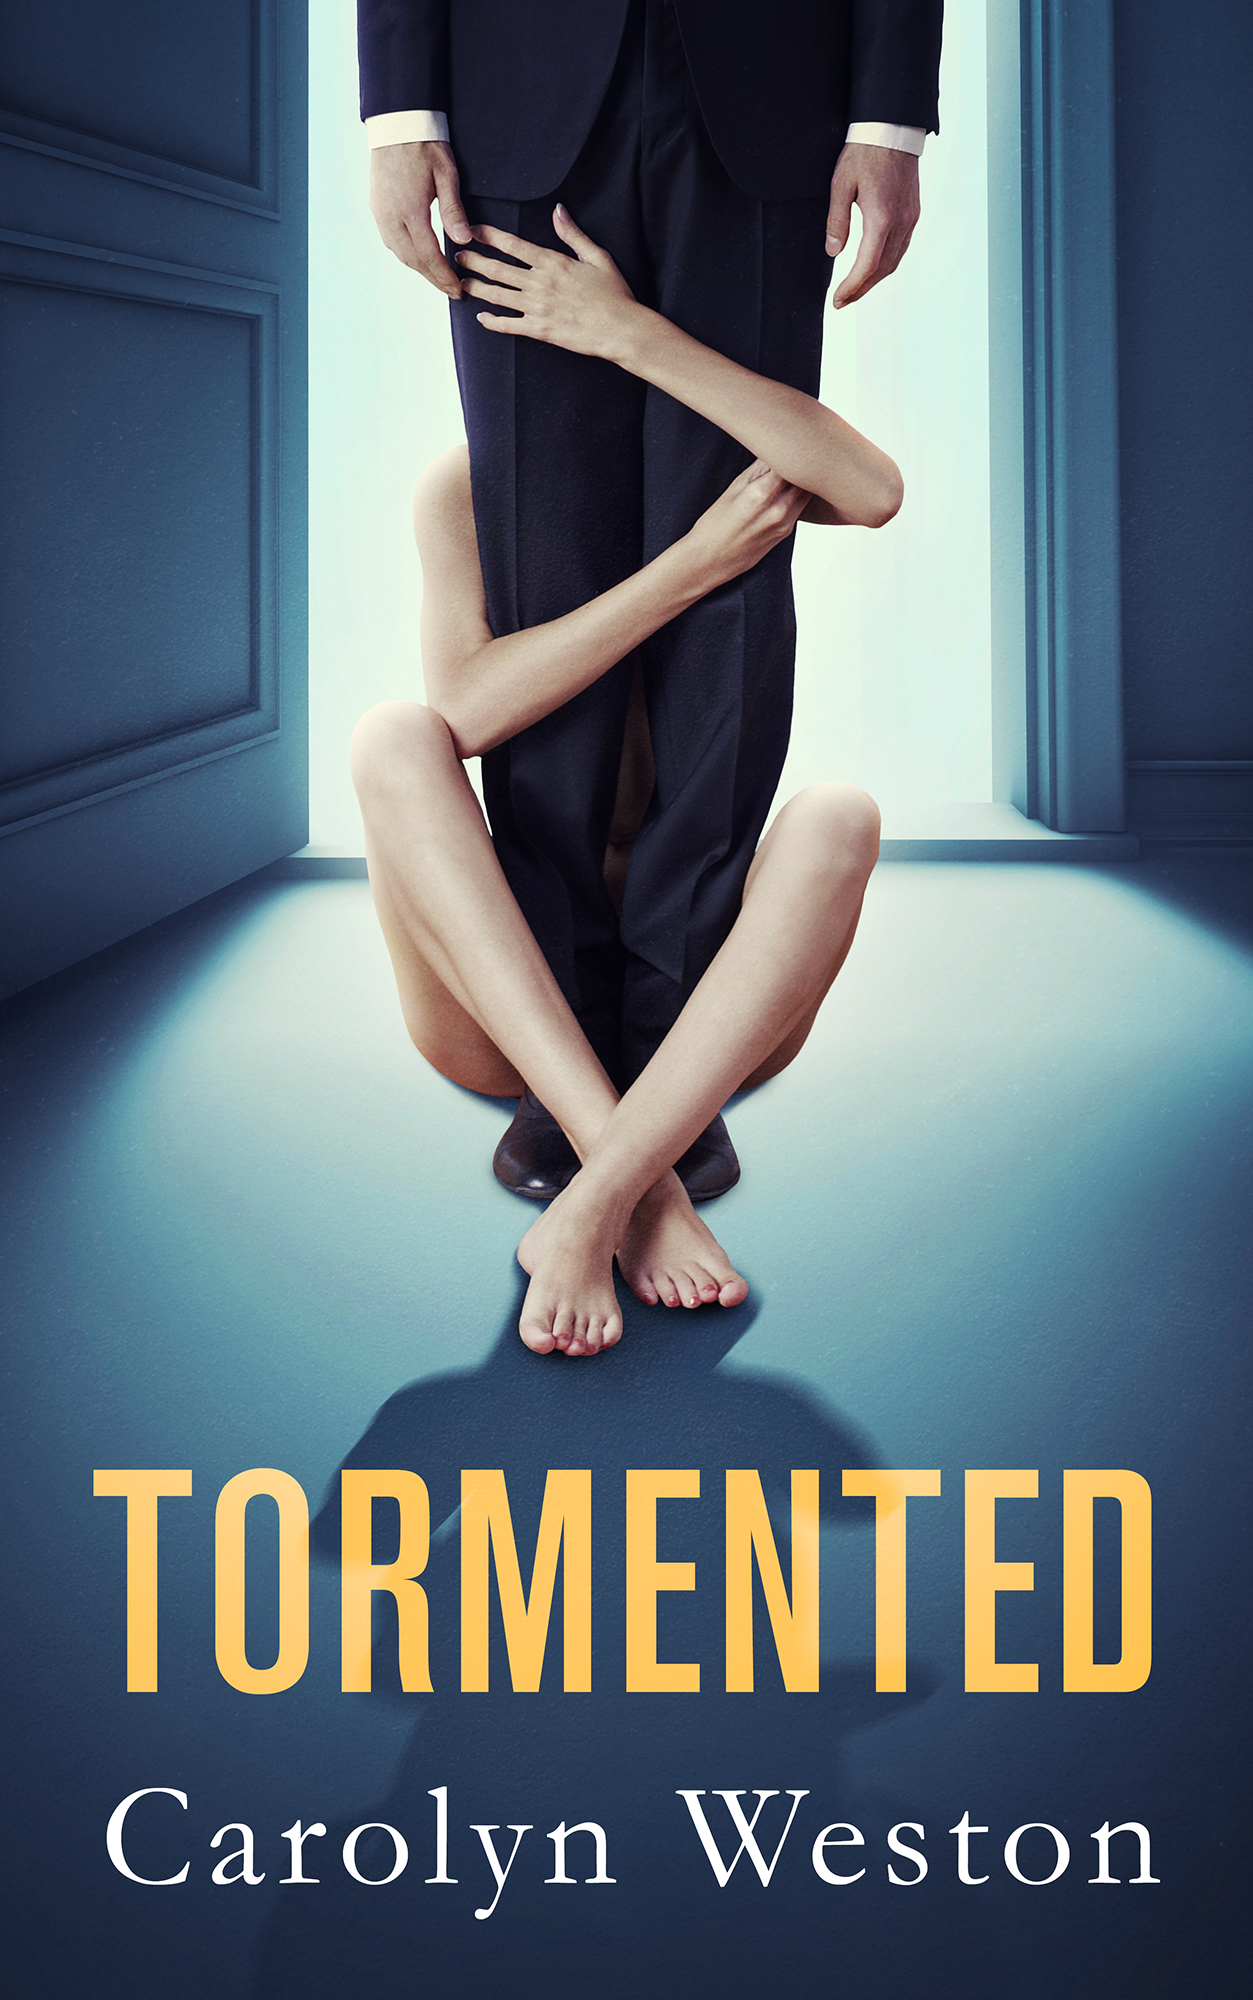 Tormented by Carolyn Weston